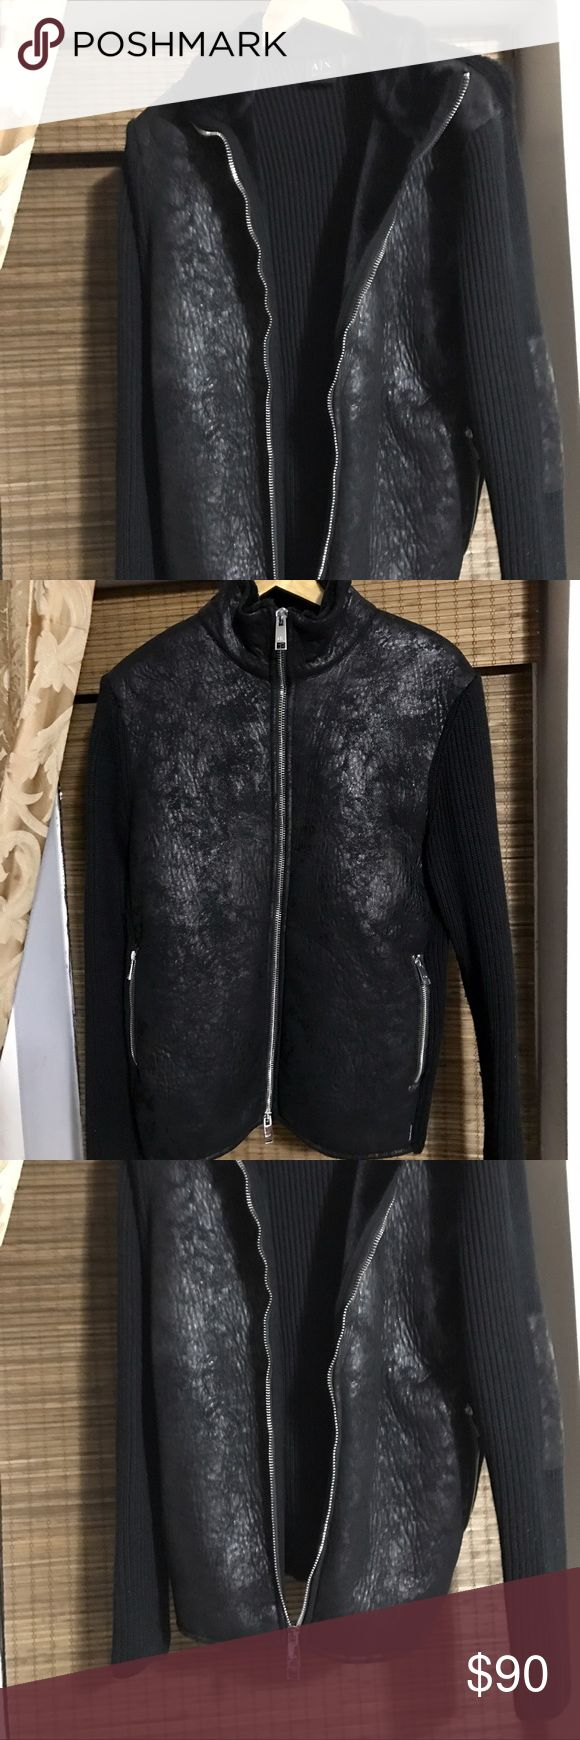 A/X Armani Exchange zip cardigan winter 2015 Armani Exchange zip cardigan jacket , from winter 2015 collection, worn once looks like brand new A/X Armani Exchange Jackets & Coats